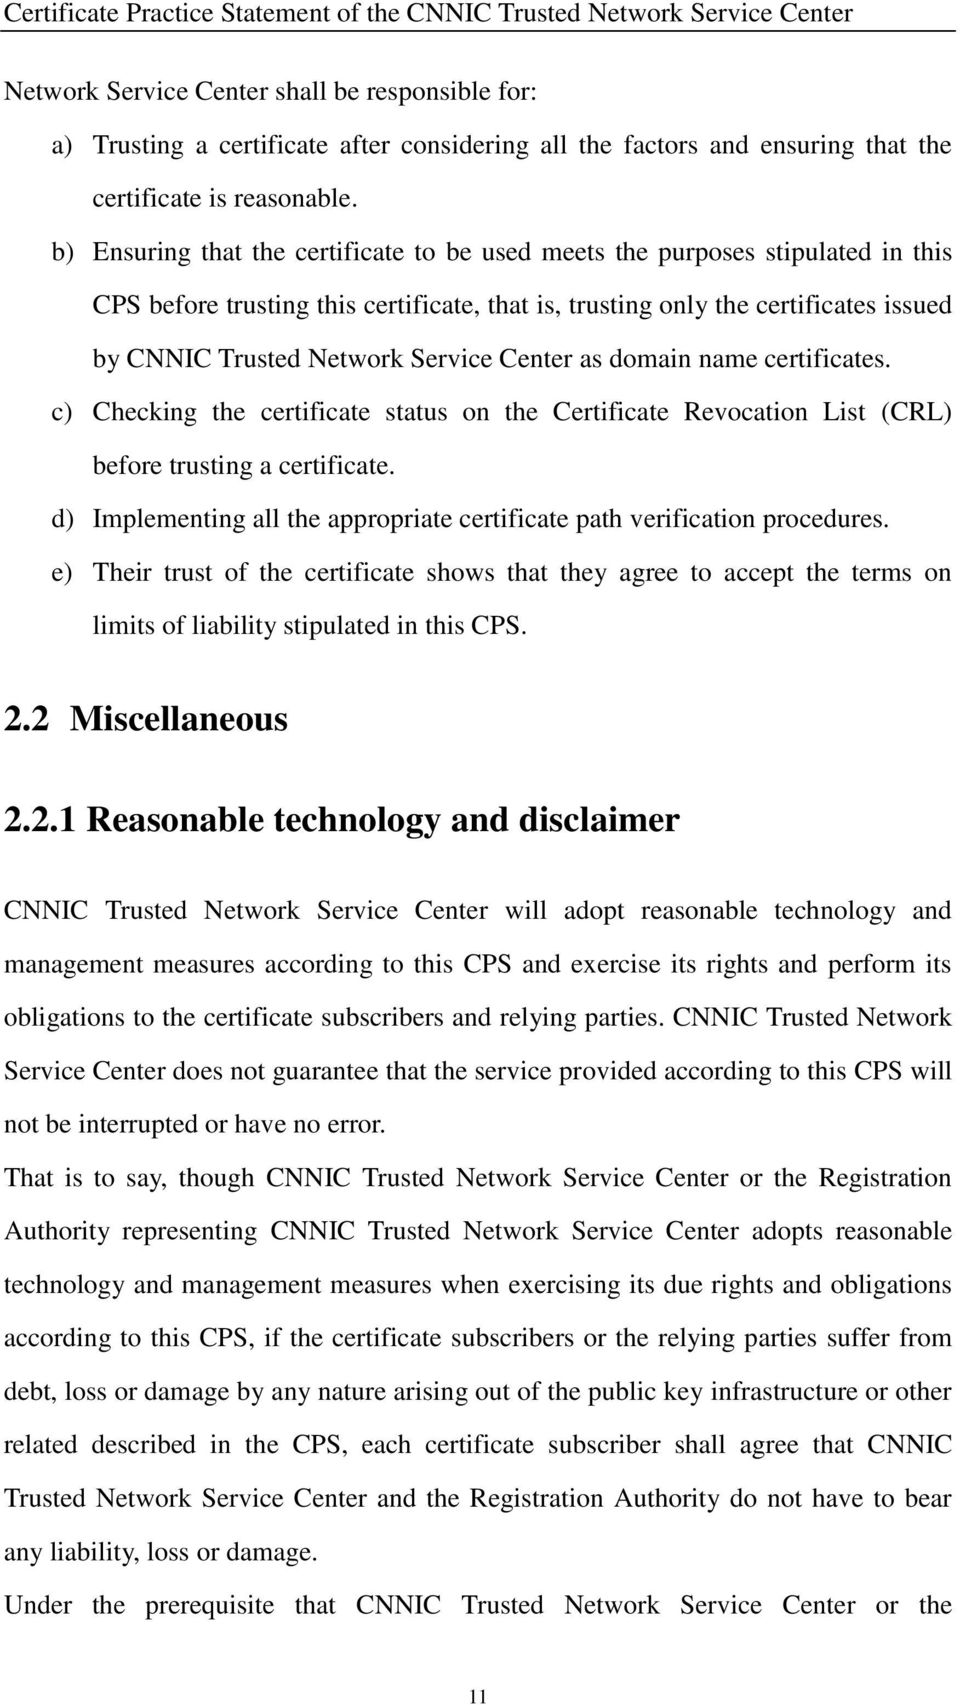 Center as domain name certificates. c) Checking the certificate status on the Certificate Revocation List (CRL) before trusting a certificate.